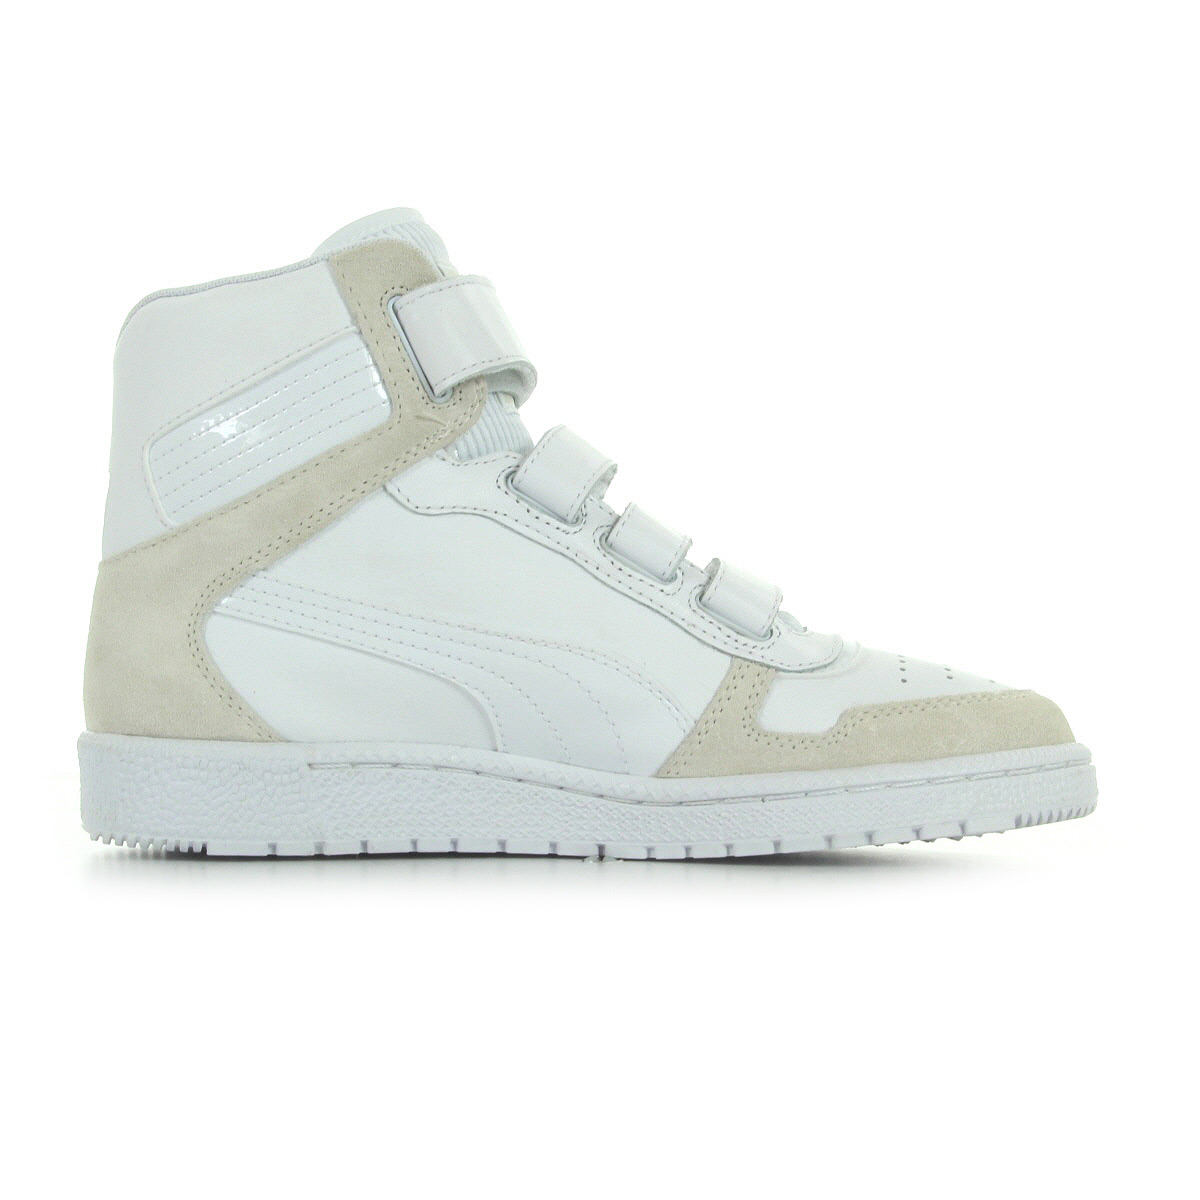 chaussures baskets puma femme sky 3 taille blanc blanche cuir lacets ebay. Black Bedroom Furniture Sets. Home Design Ideas